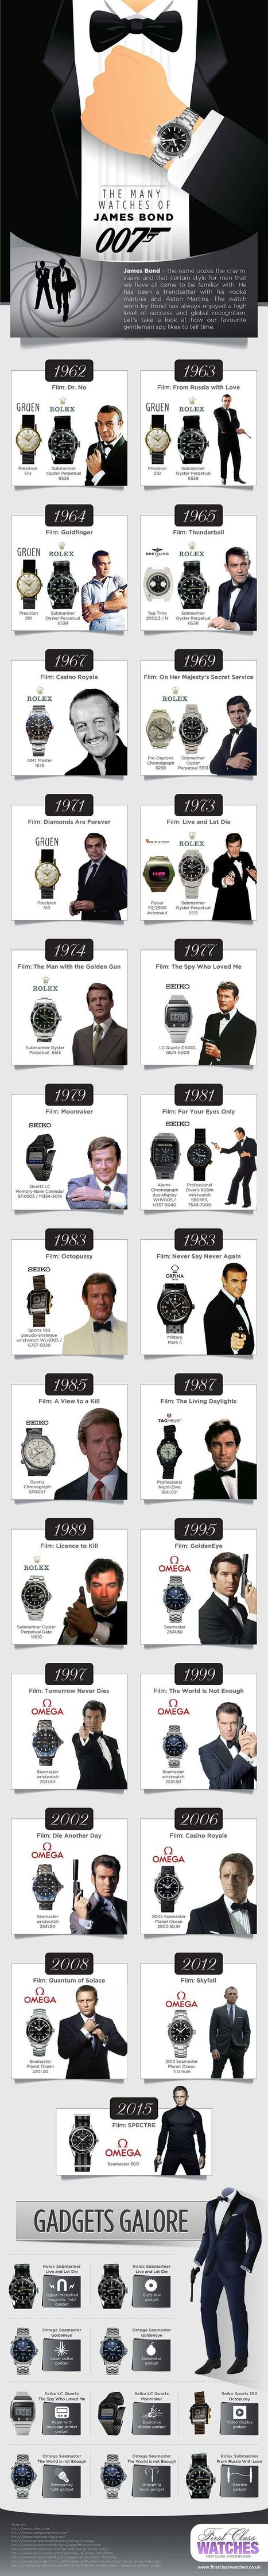 The Many Watches of James Bond | robinjoen | Scoop.it